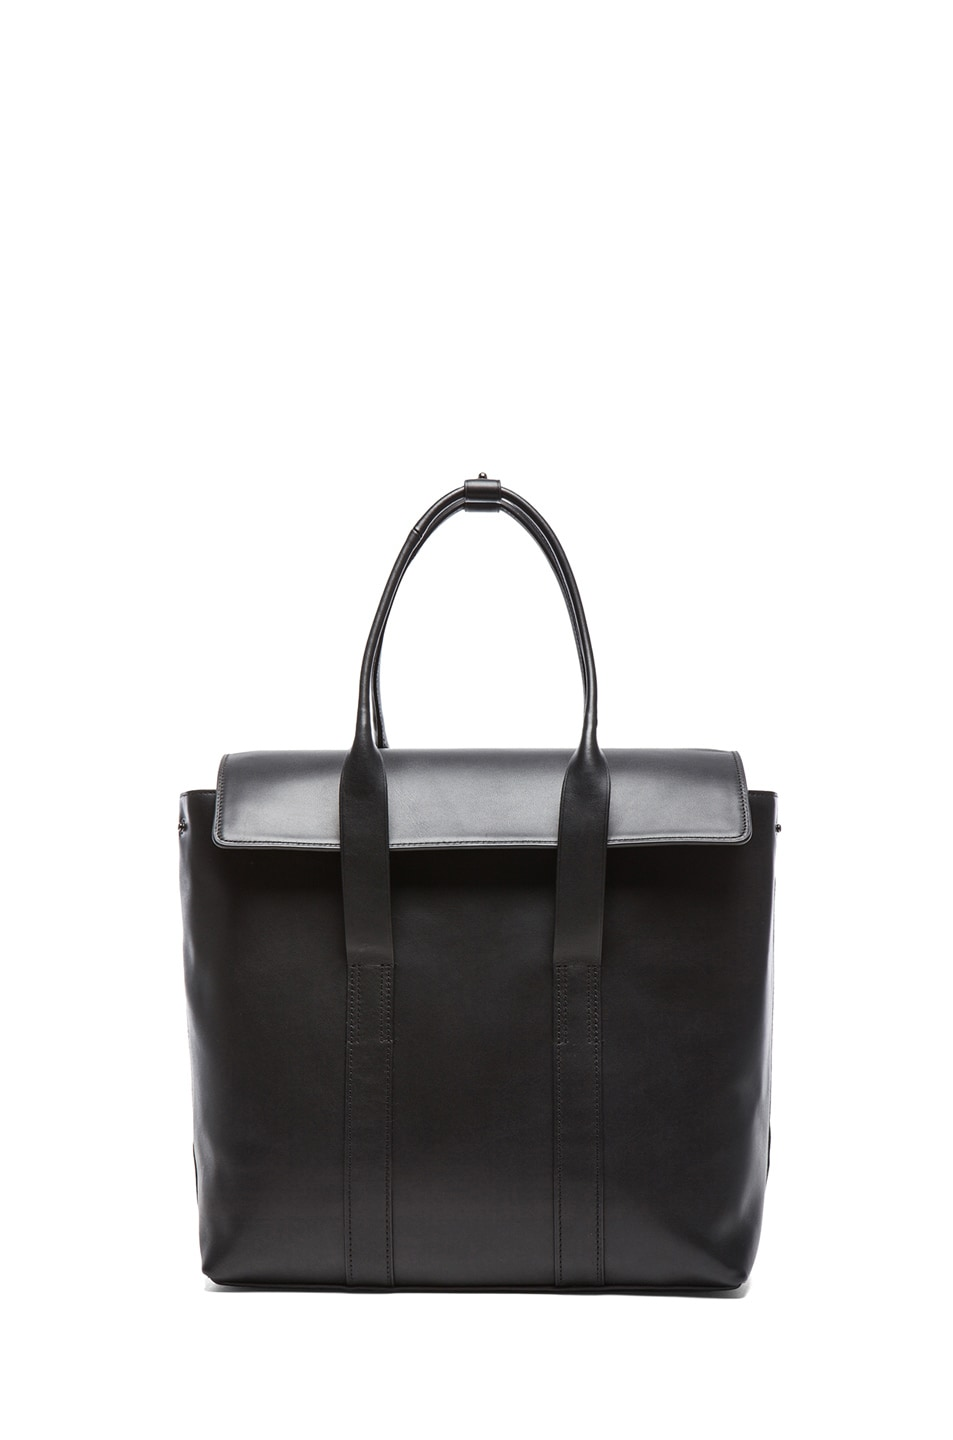 Image 1 of 3.1 phillip lim Medium 31 Hour Satchel in Black & Gunmetal